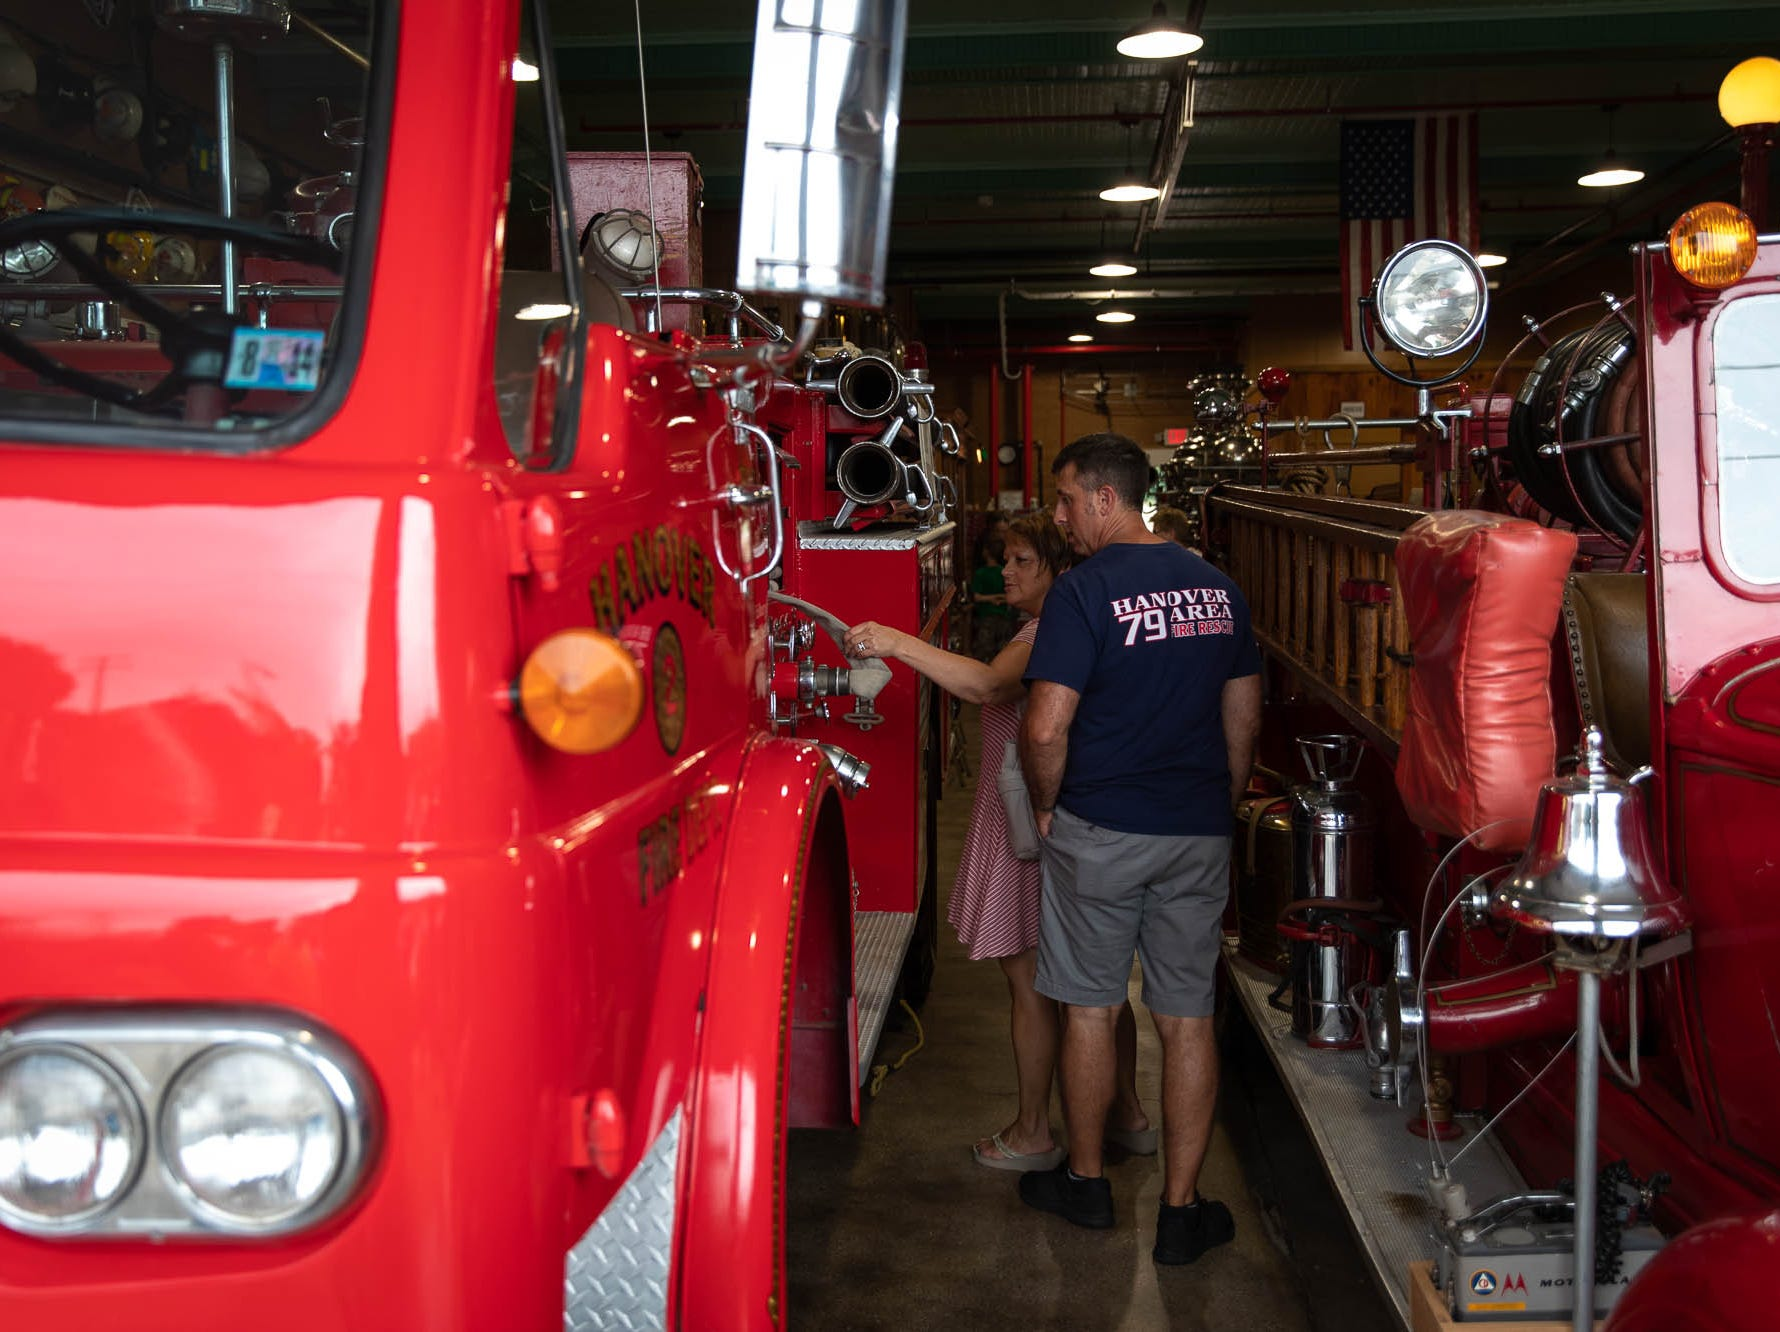 Hanover Area Fire & Rescue firefighter Kevin Sneeringer looks around the new Greater Hanover Area Fire Museum, Saturday, Sept. 1, 2018, in Hanover.